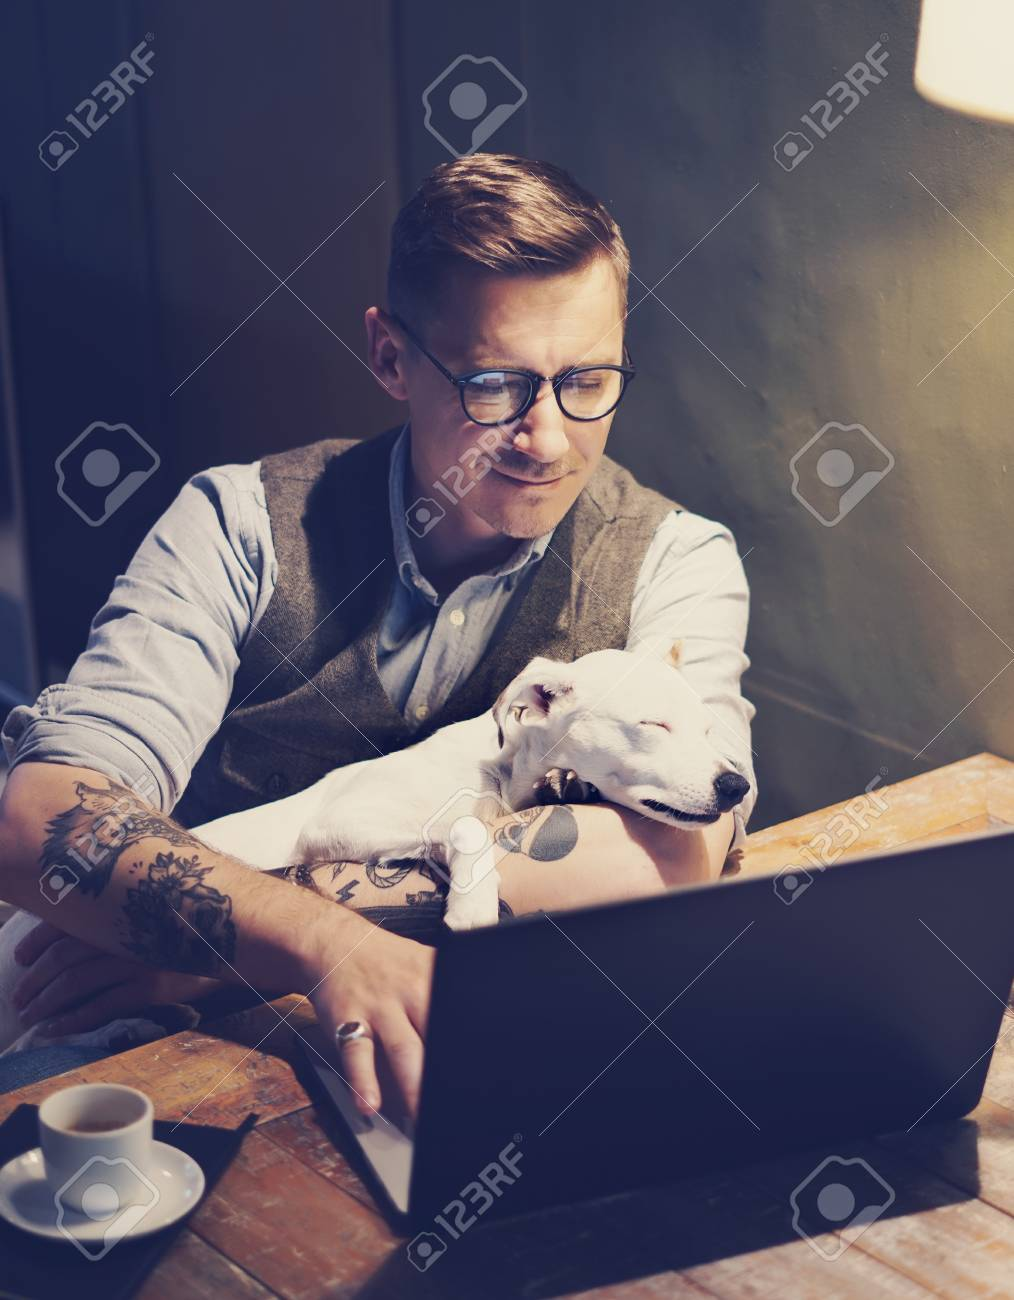 e6d7ce5ad Smiling tattooed man in eyeglasses working at home on laptop while sitting  at the wooden table